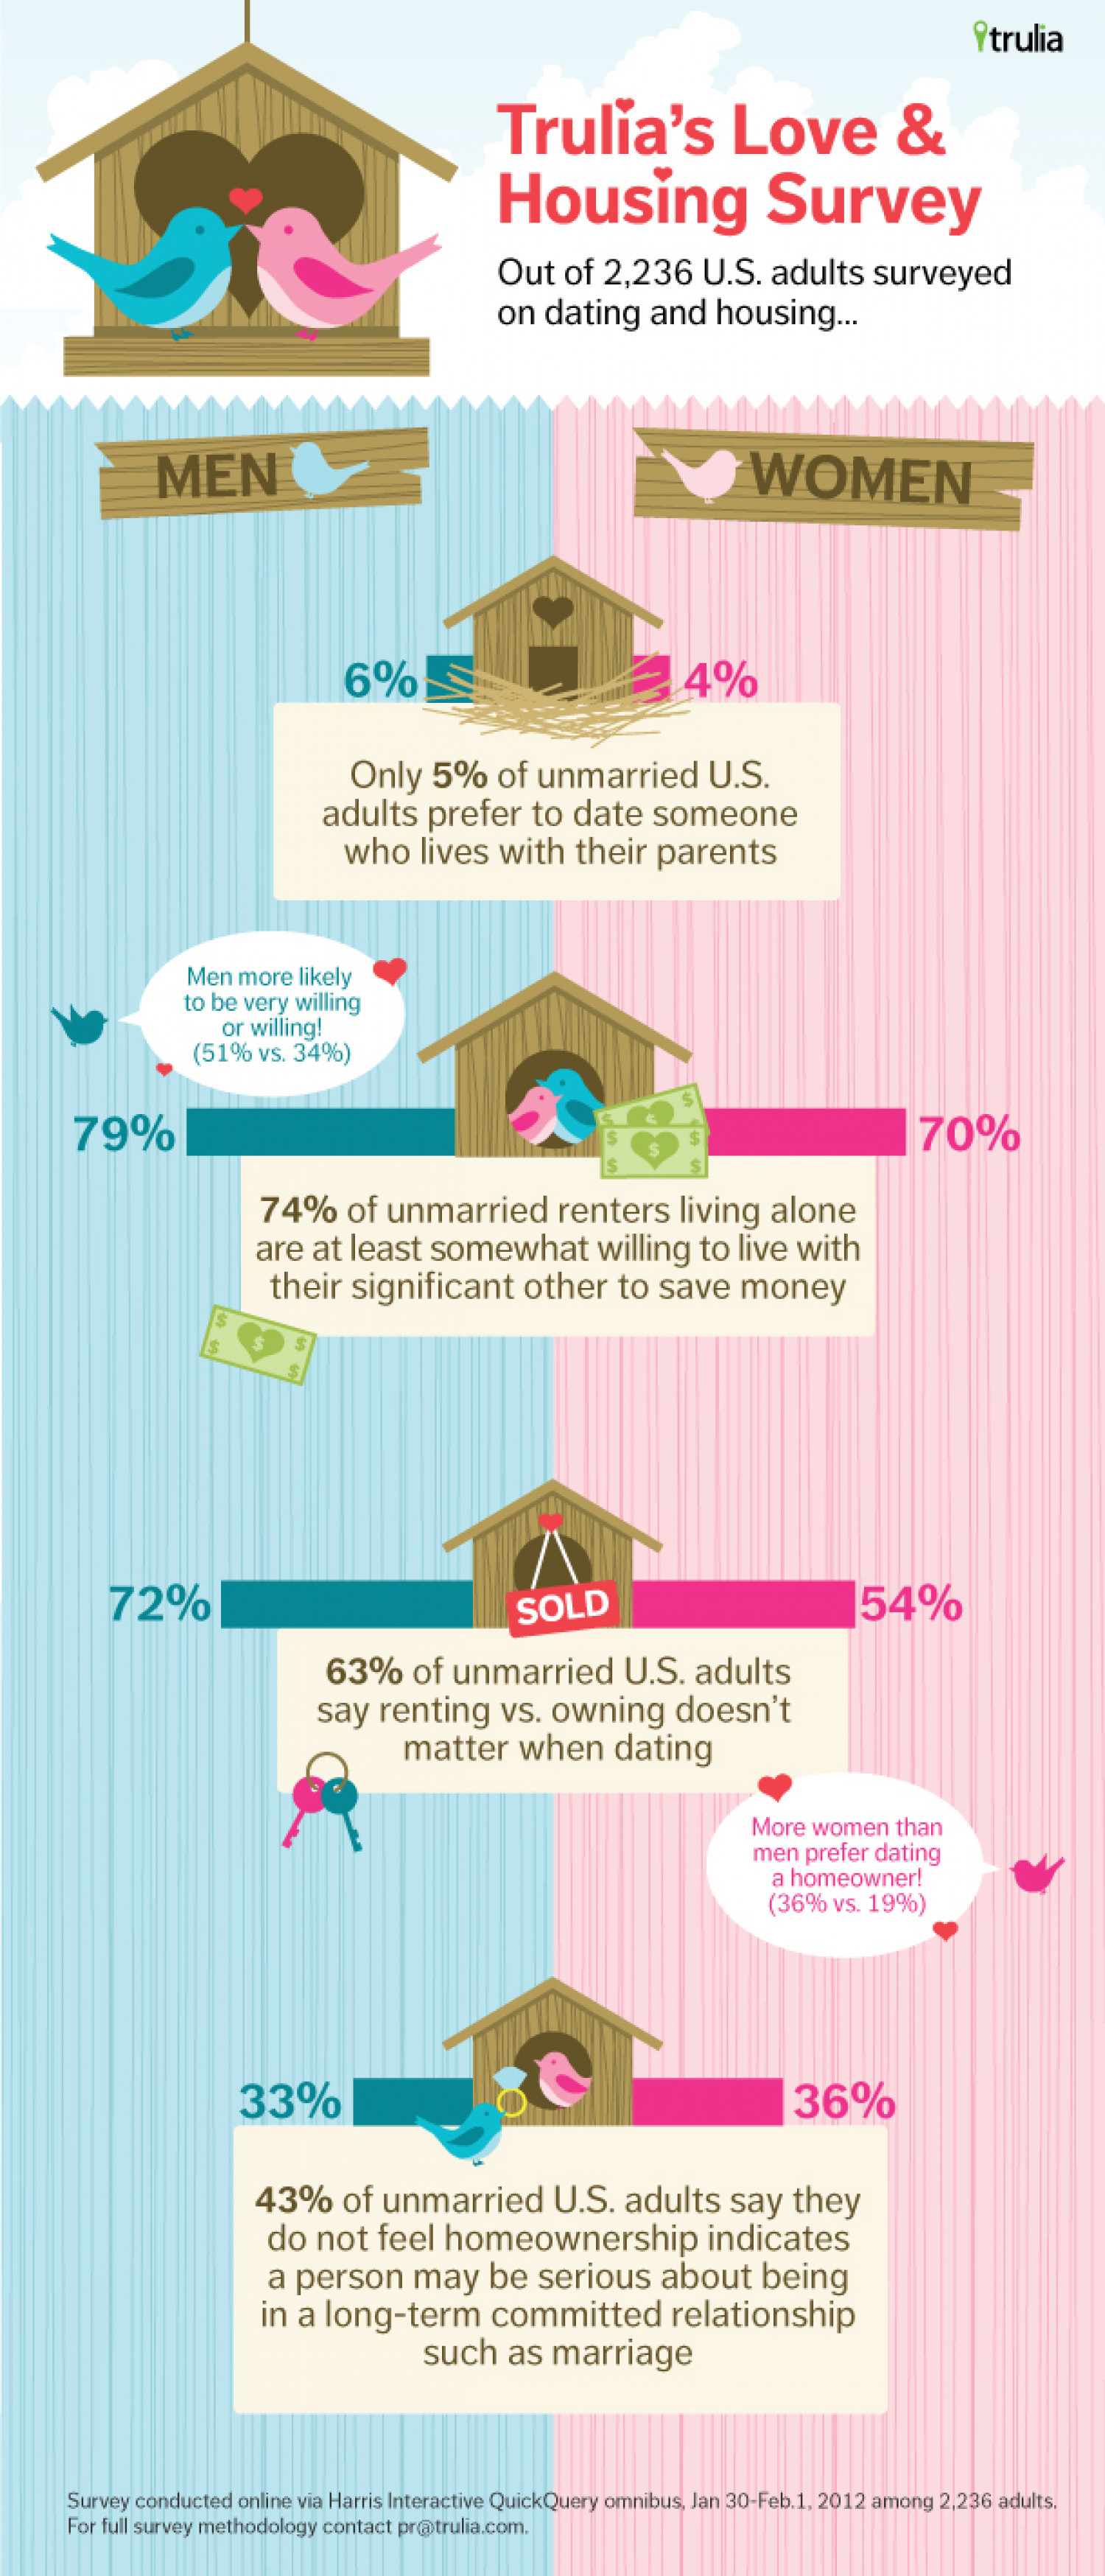 Trulia's Love & Housing Survey Infographic